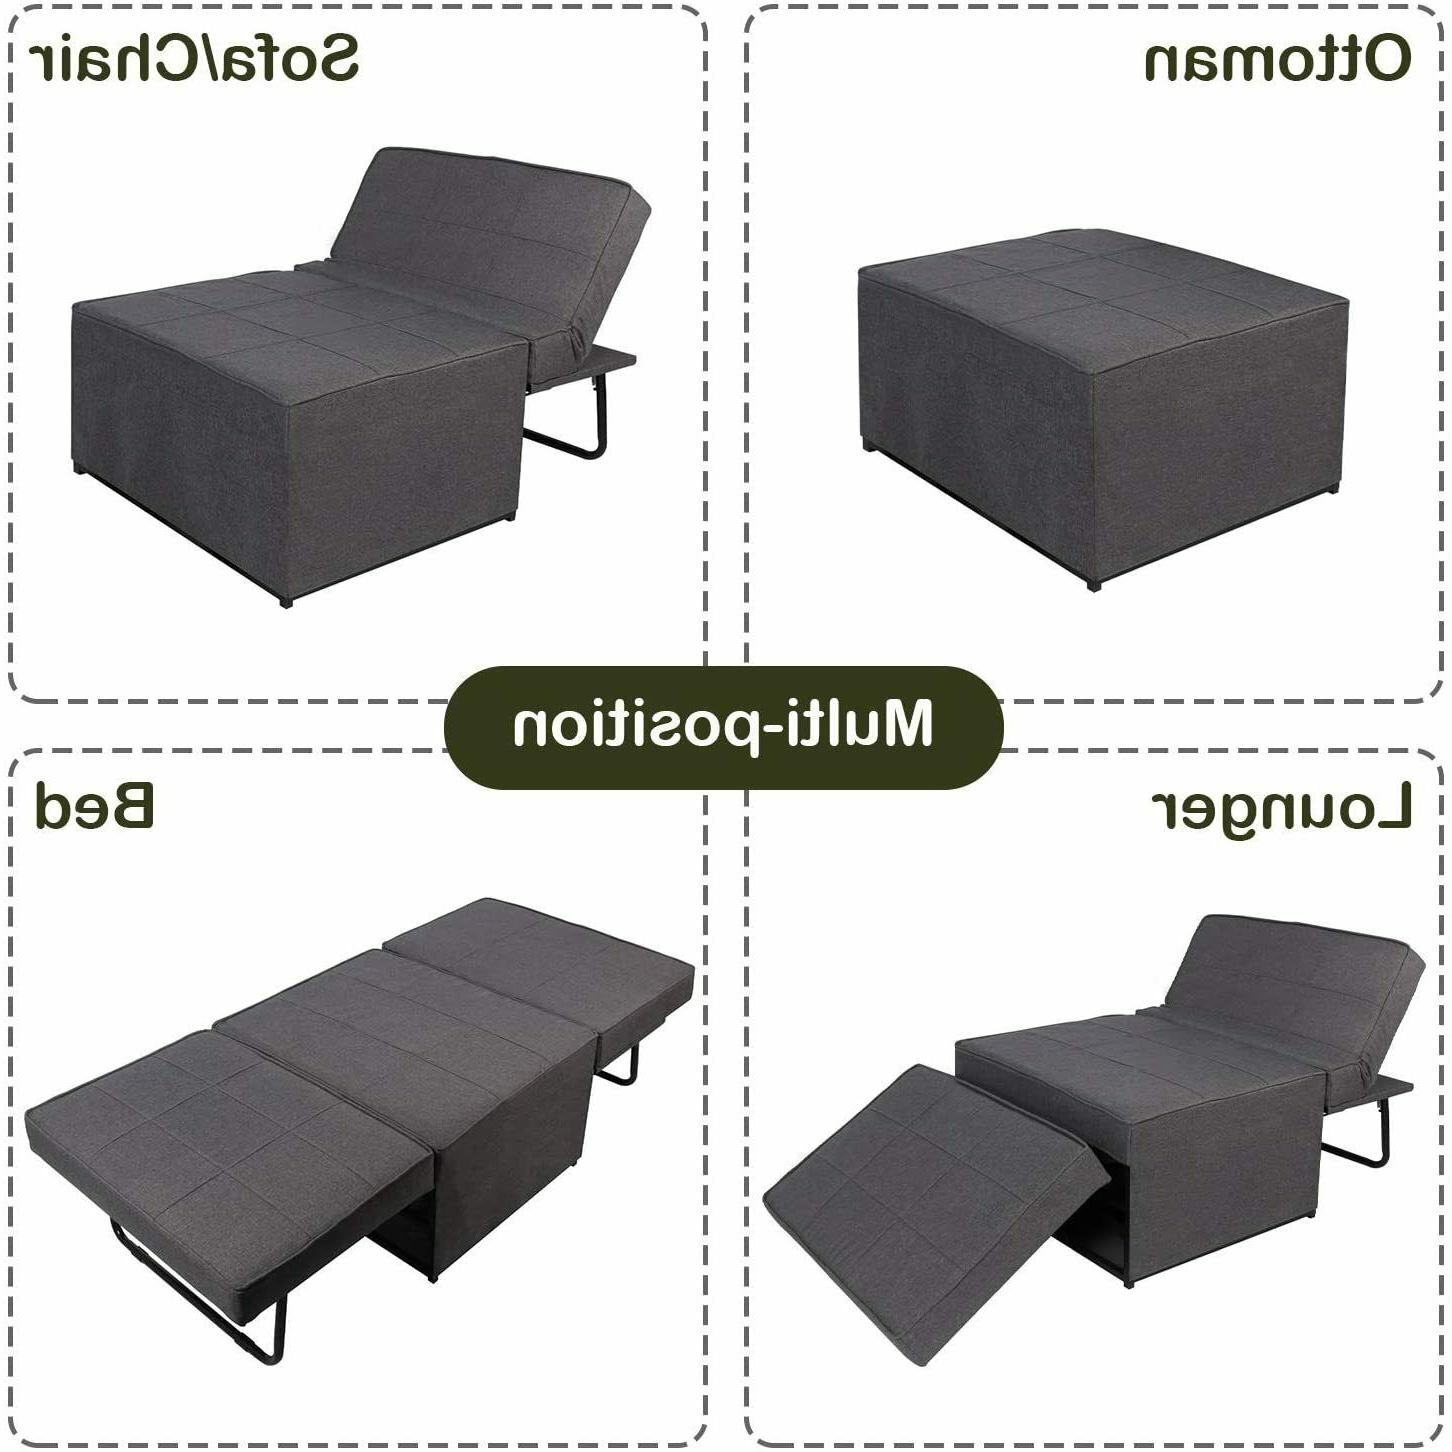 4-in-1 Sleeper Couch Lounger Ottoman